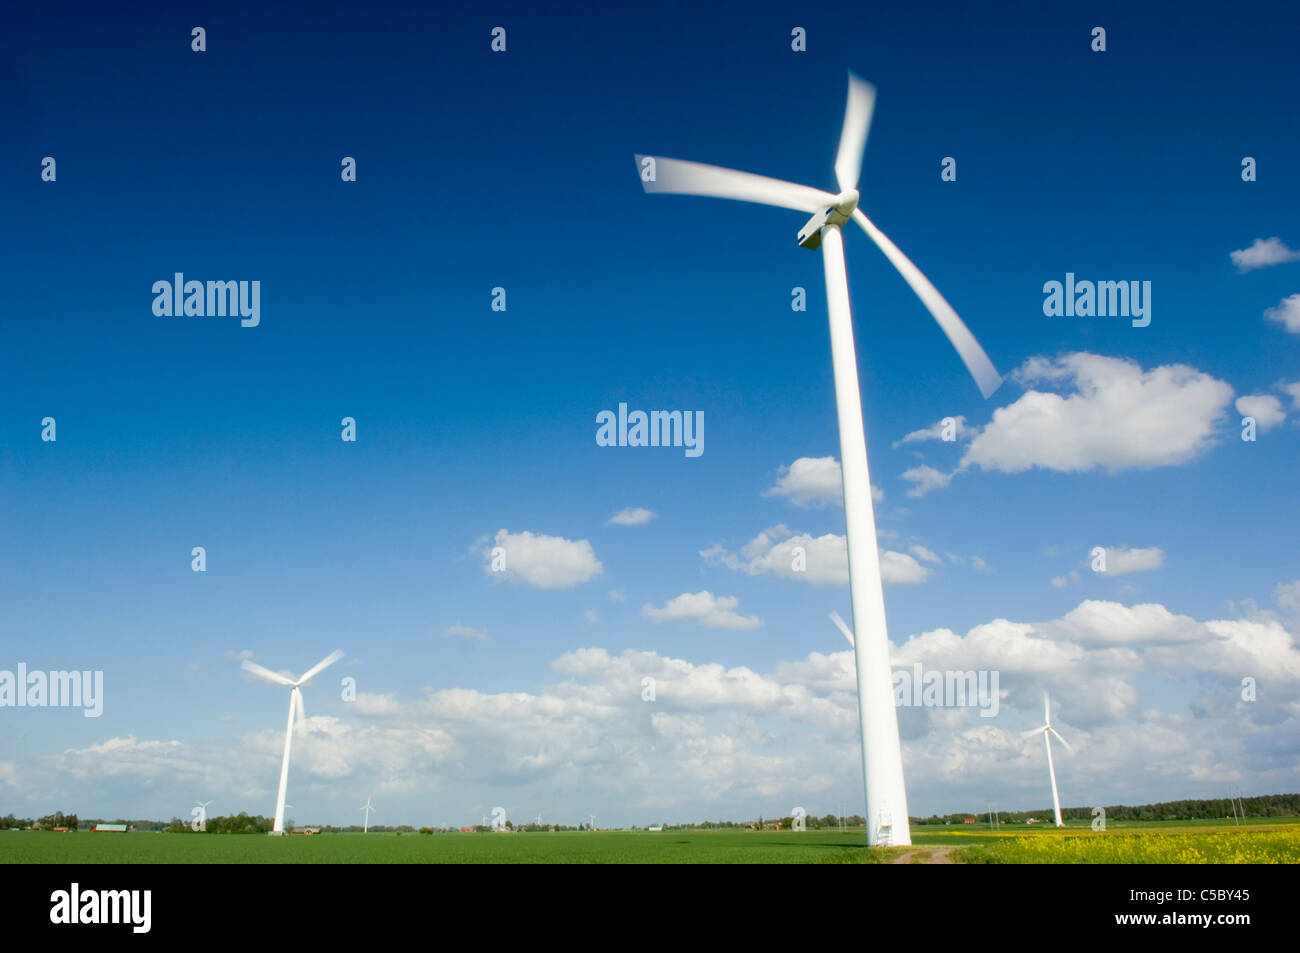 Low angle view of wind turbines on peaceful landscape against the sky - Stock Image